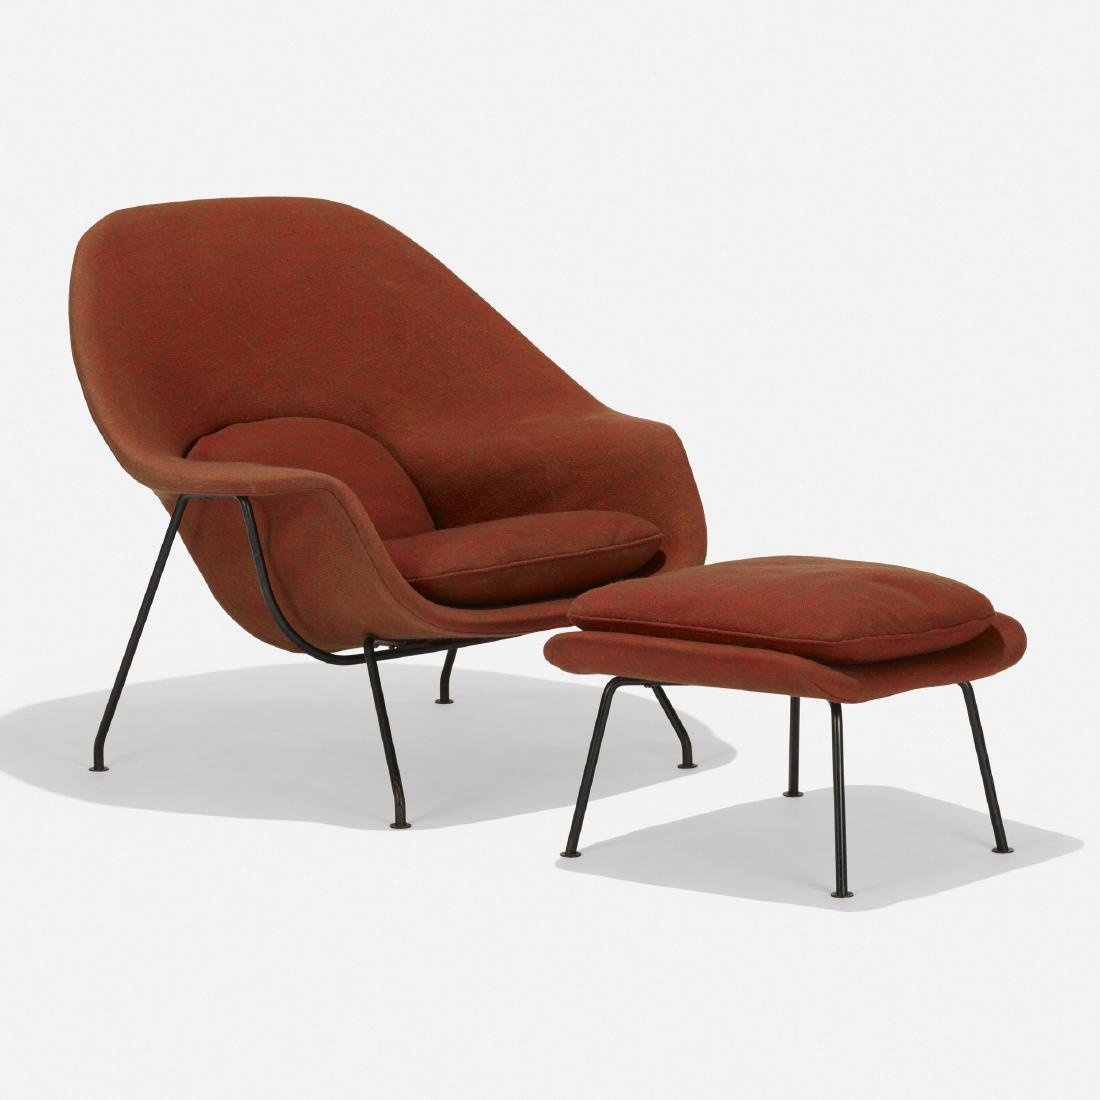 Eero Saarinen, Womb chair and ottoman